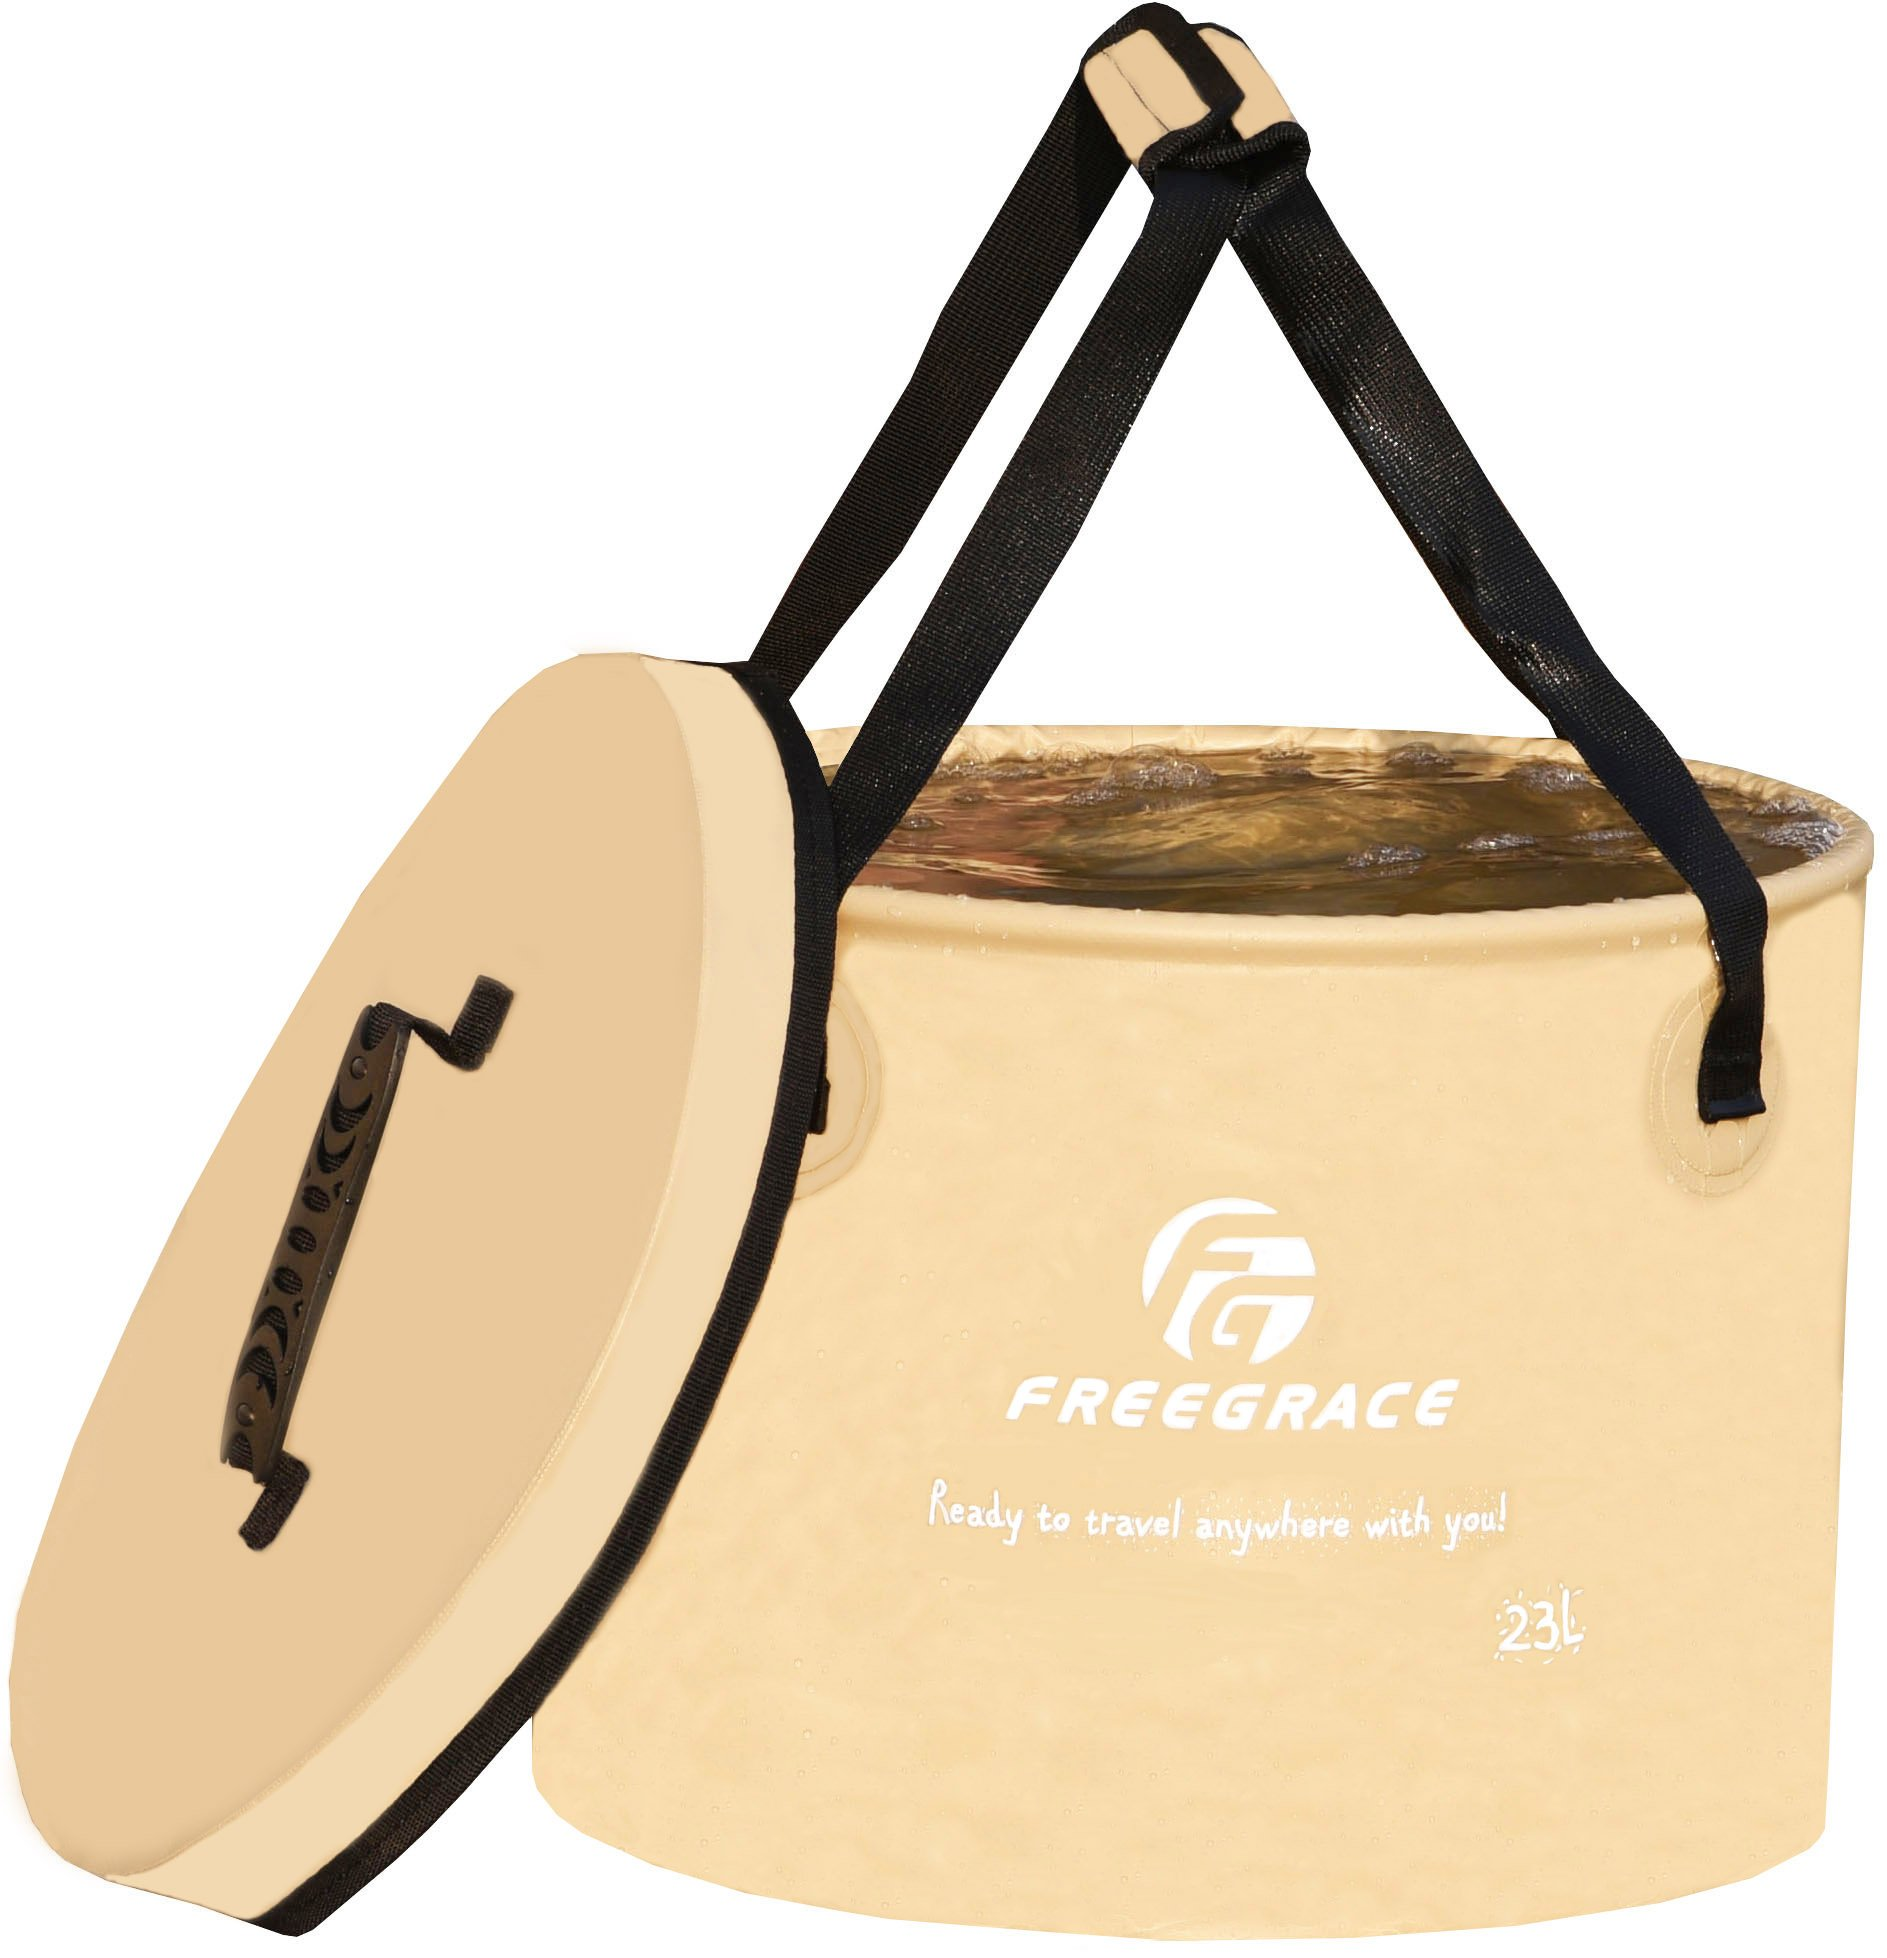 Freegrace Premium Collapsible Bucket -Multifunctional Folding Bucket -Perfect Gear for Camping, Hiking & Travel (Khaki, 23L Upgraded) by Freegrace